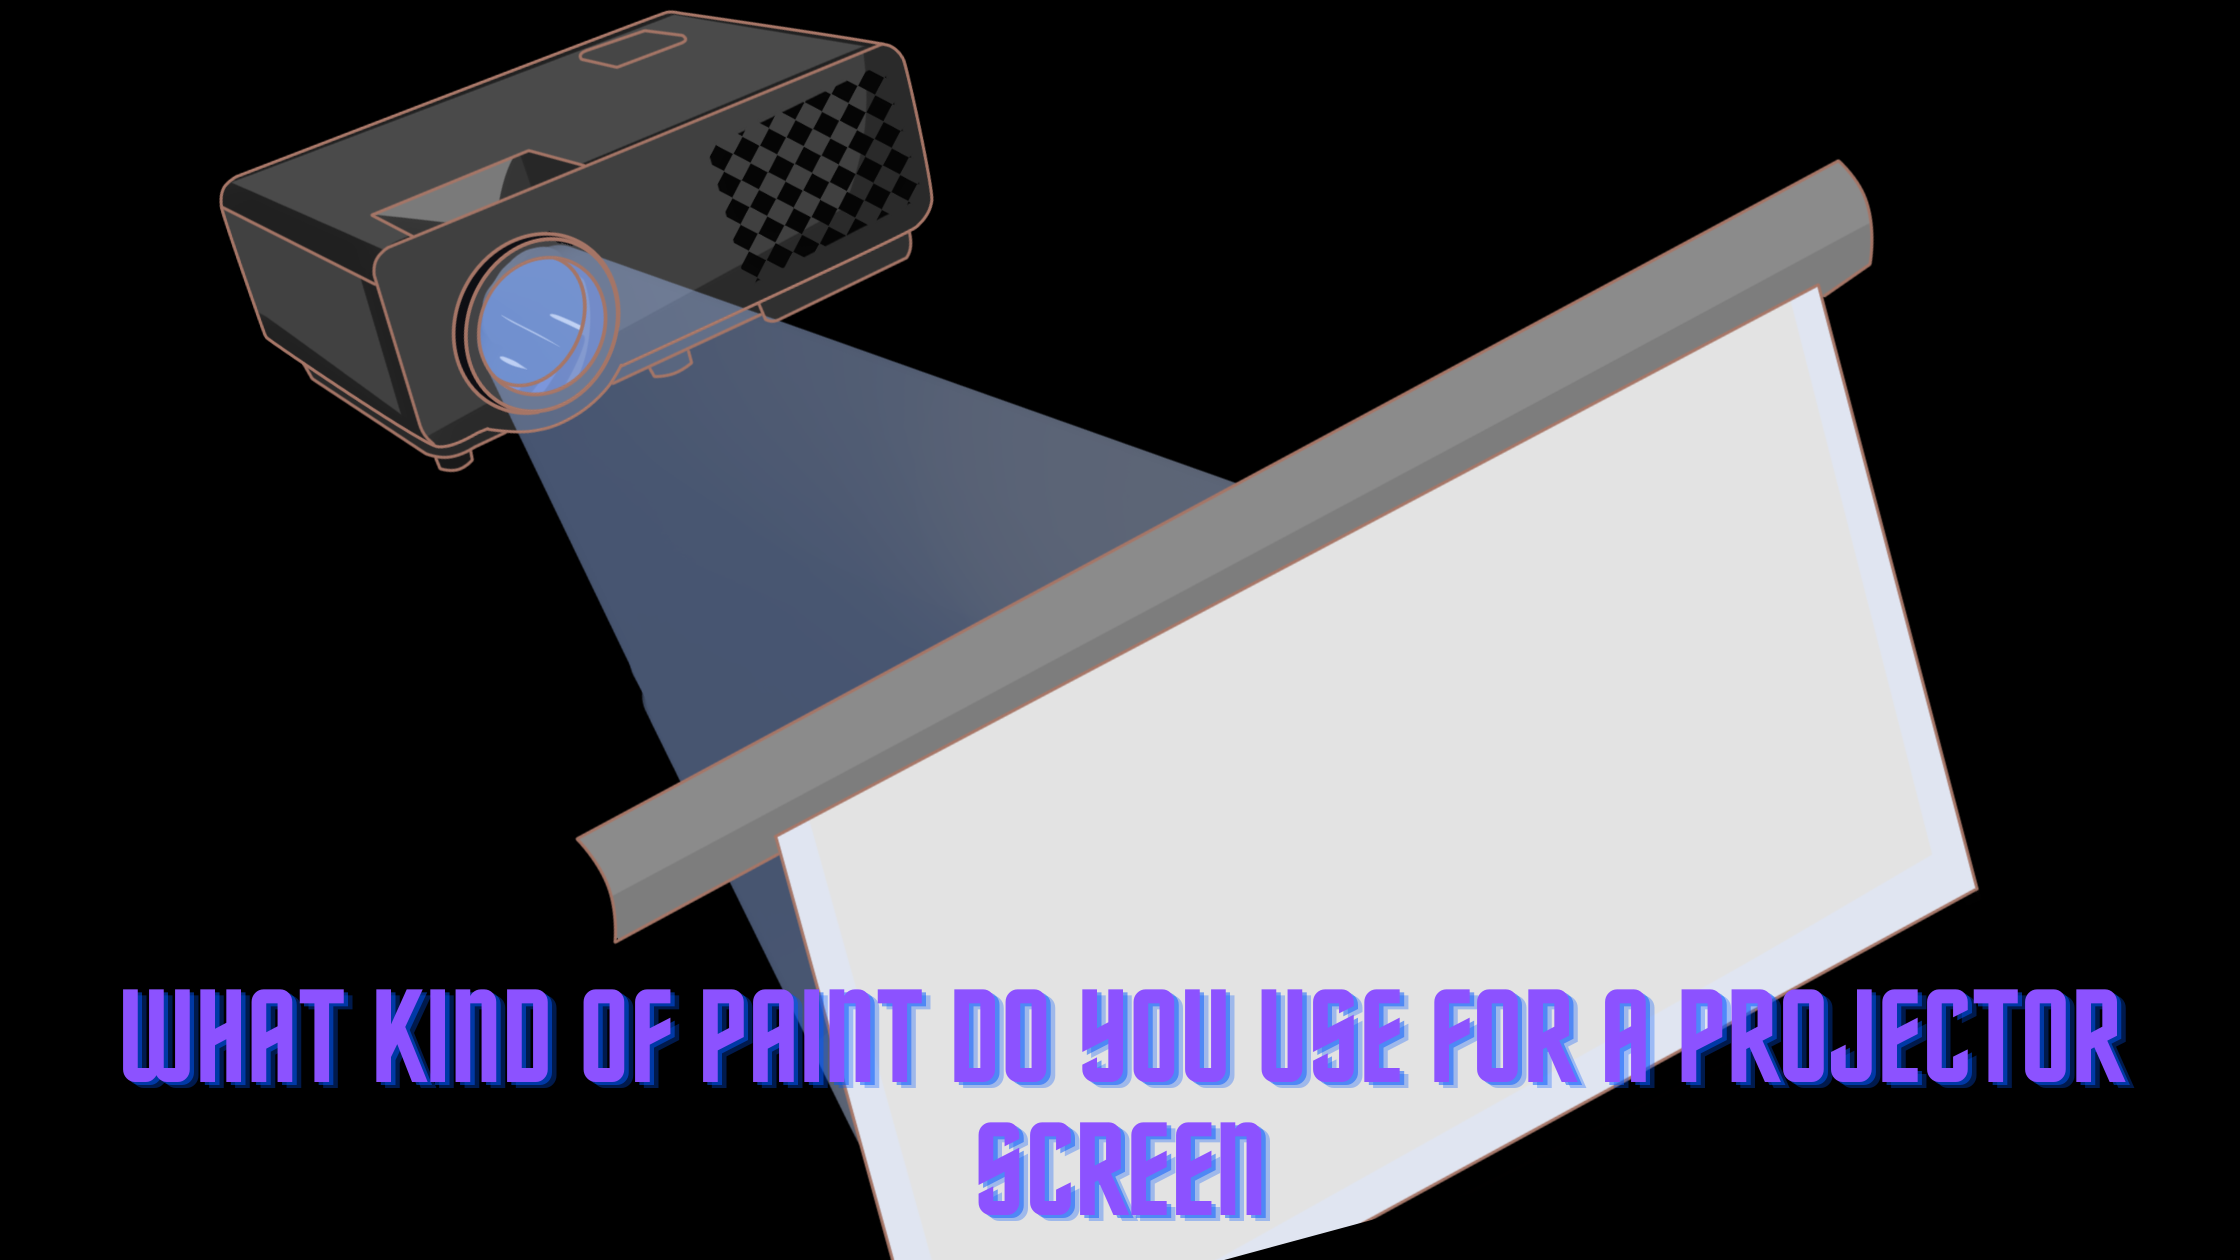 what kind of paint do you use for a projector screen